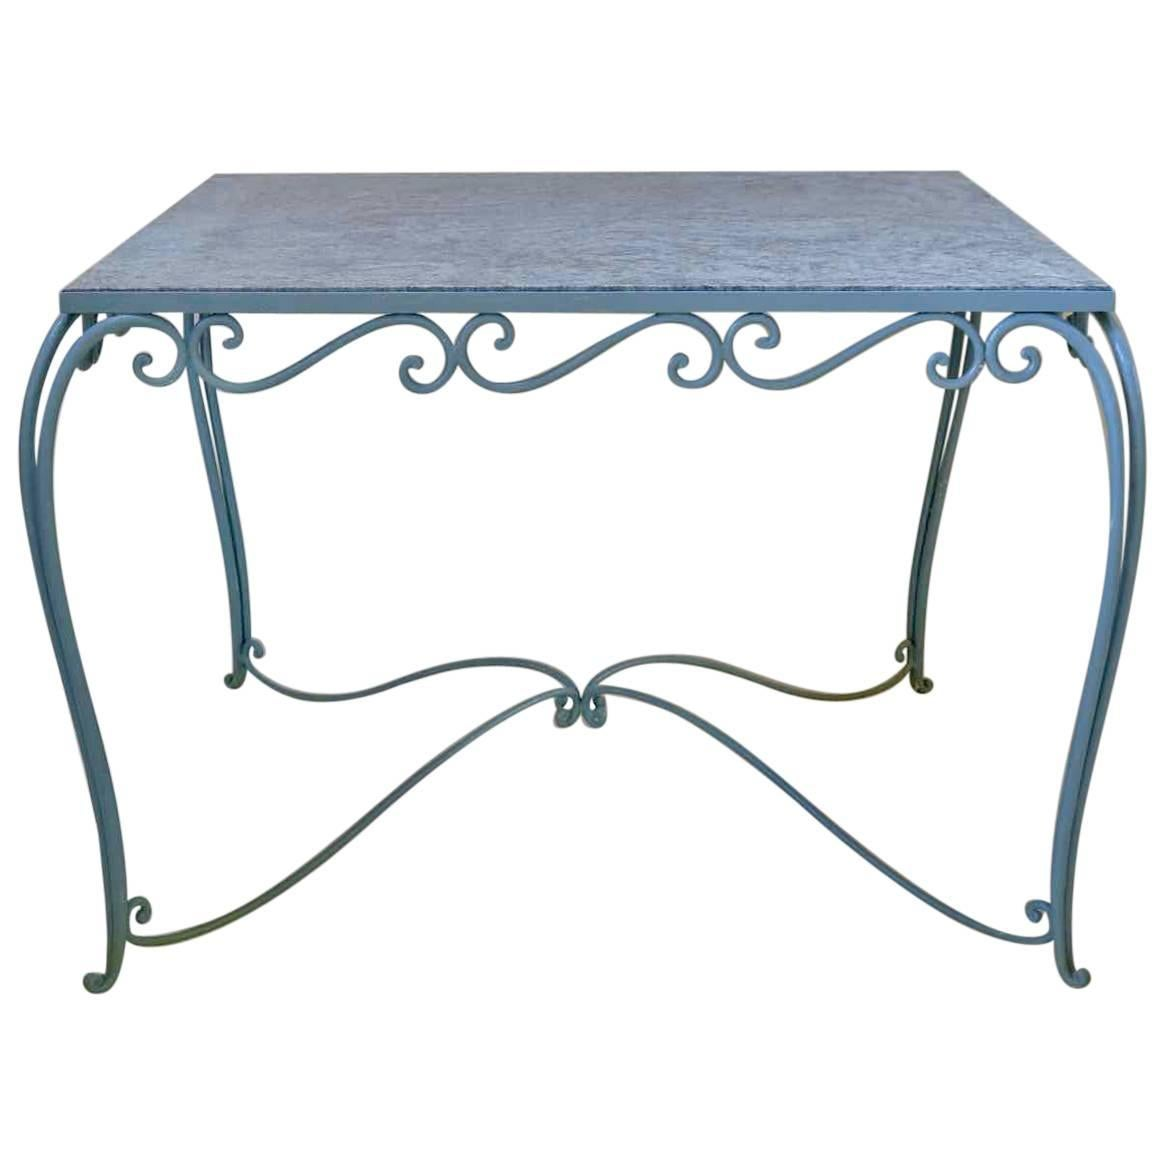 Large 1940s Square Wrought-Iron and Granite Dining Table from France